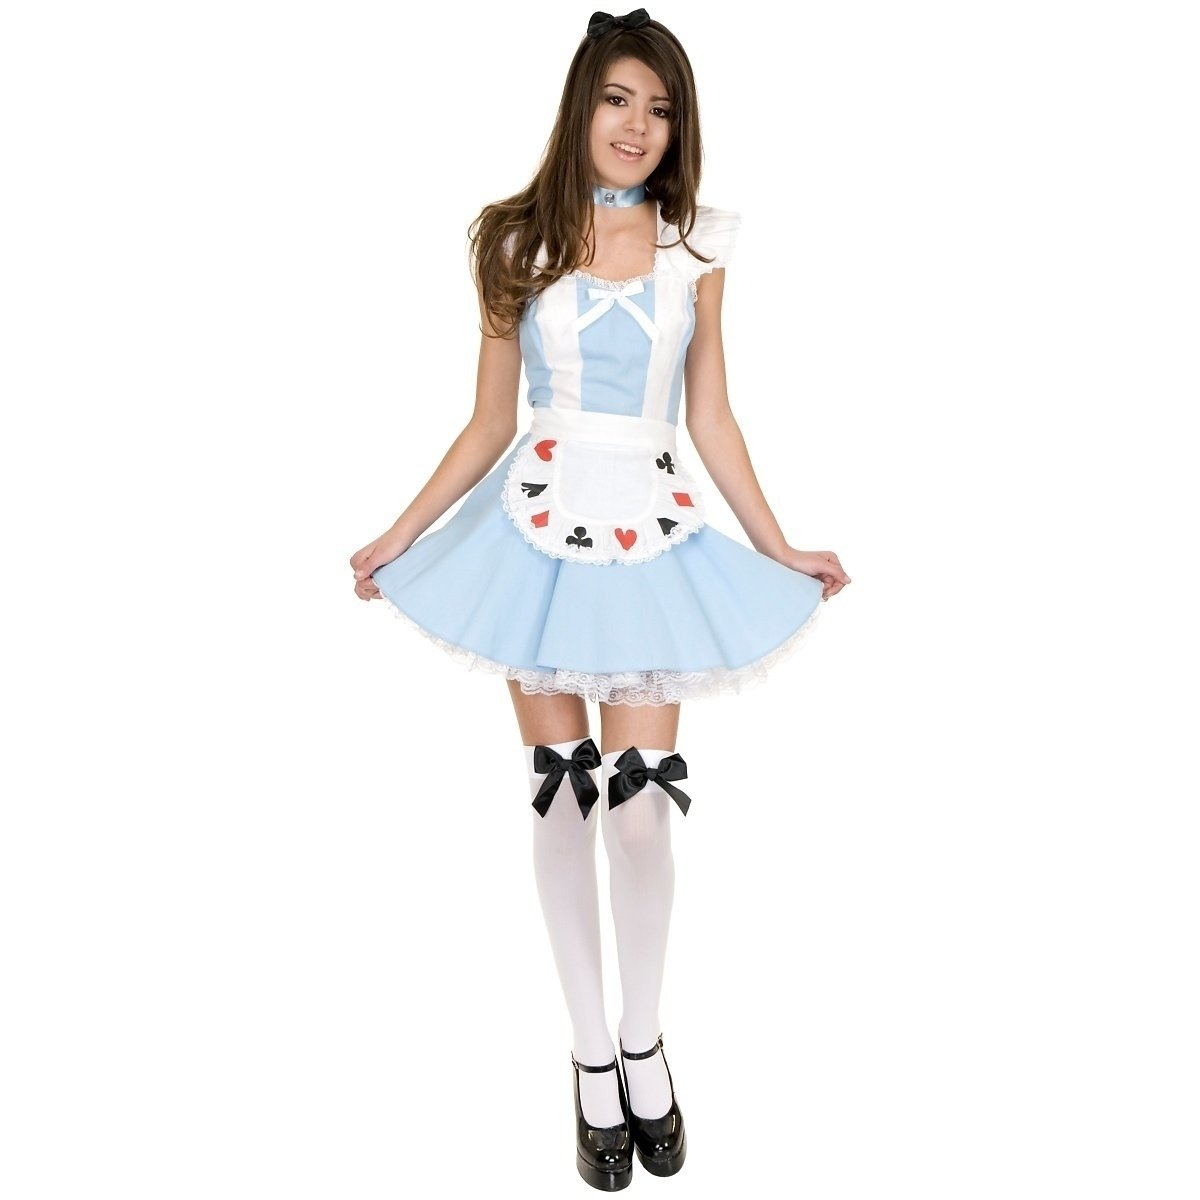 10 Pretty Halloween Costume Ideas For 13 Year Olds 10 degrees of discomfort with sexualizing teen girl halloween costumes